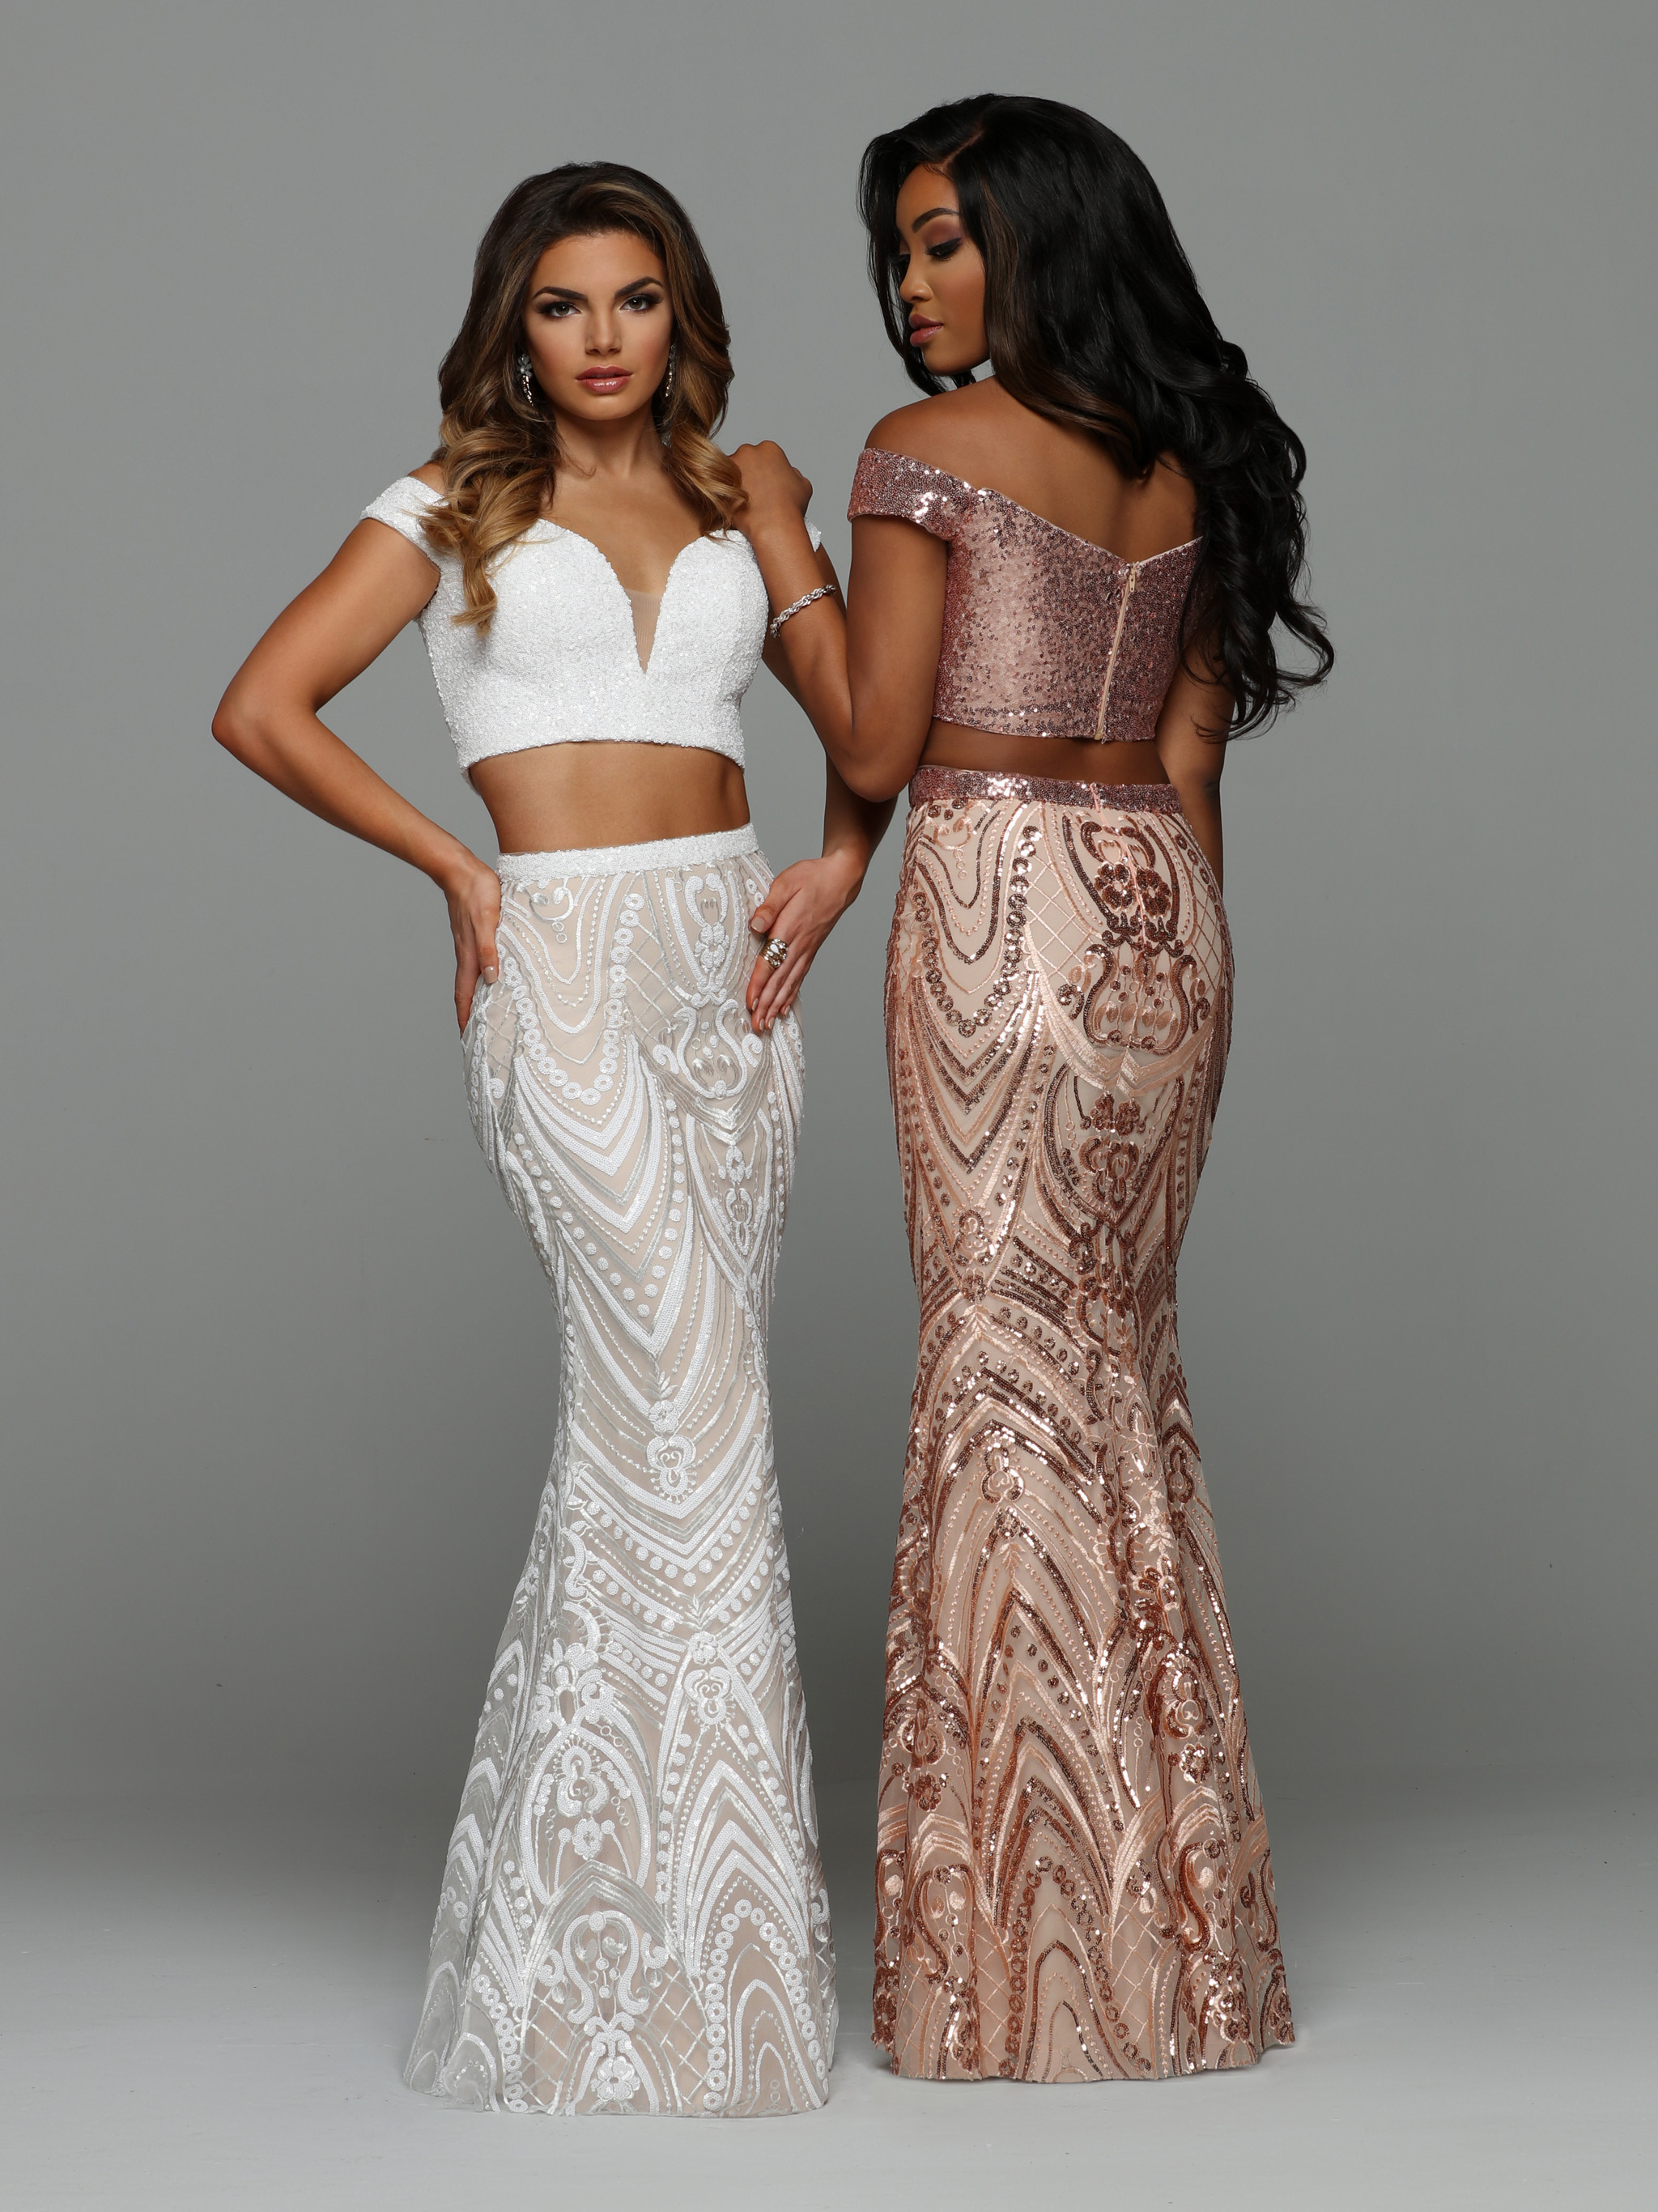 Top Prom Dress Trends For 2019 Rose Gold Prom Dresses Sparkle Prom Fashion Blog